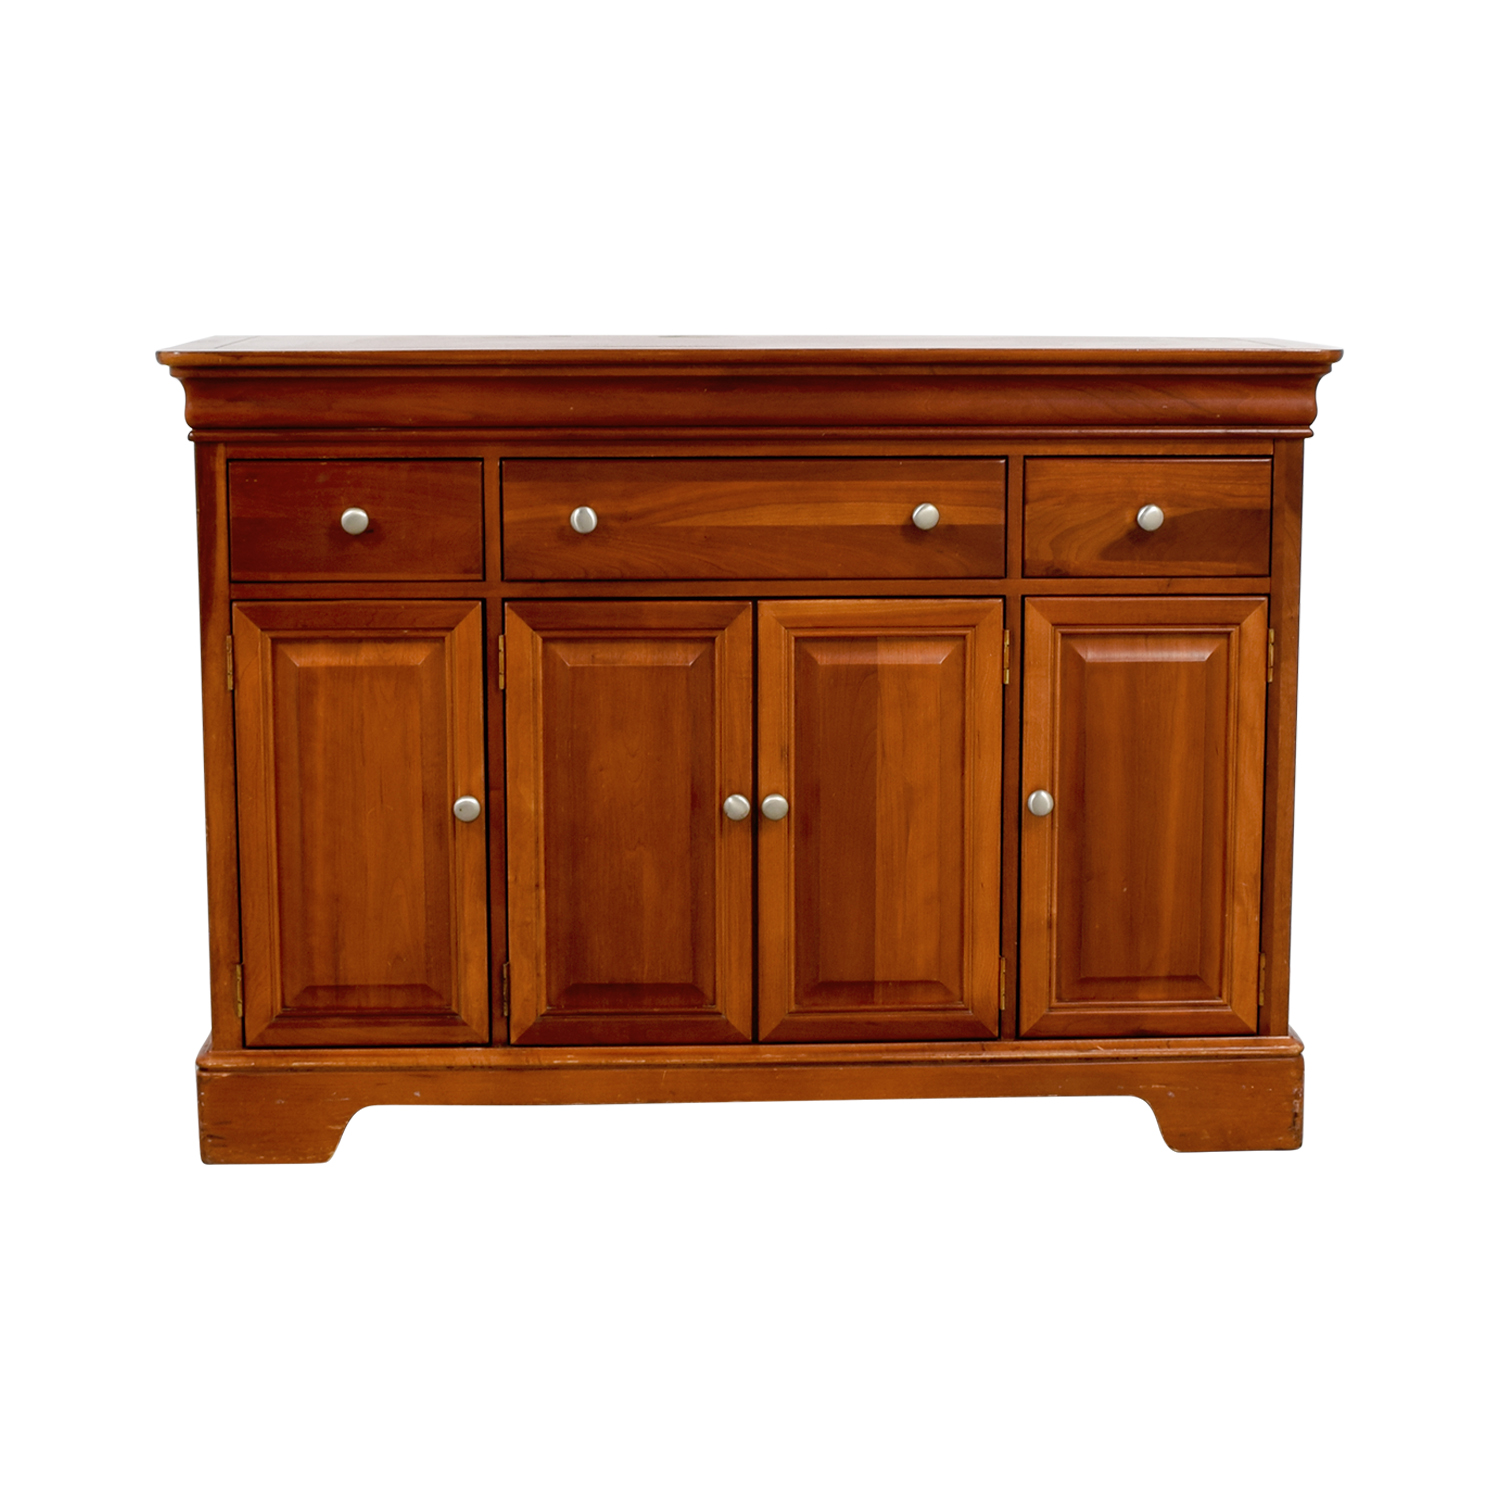 Stanley Furniture Stanley Furniture Wood Foyer Cabinet with Drawers nyc